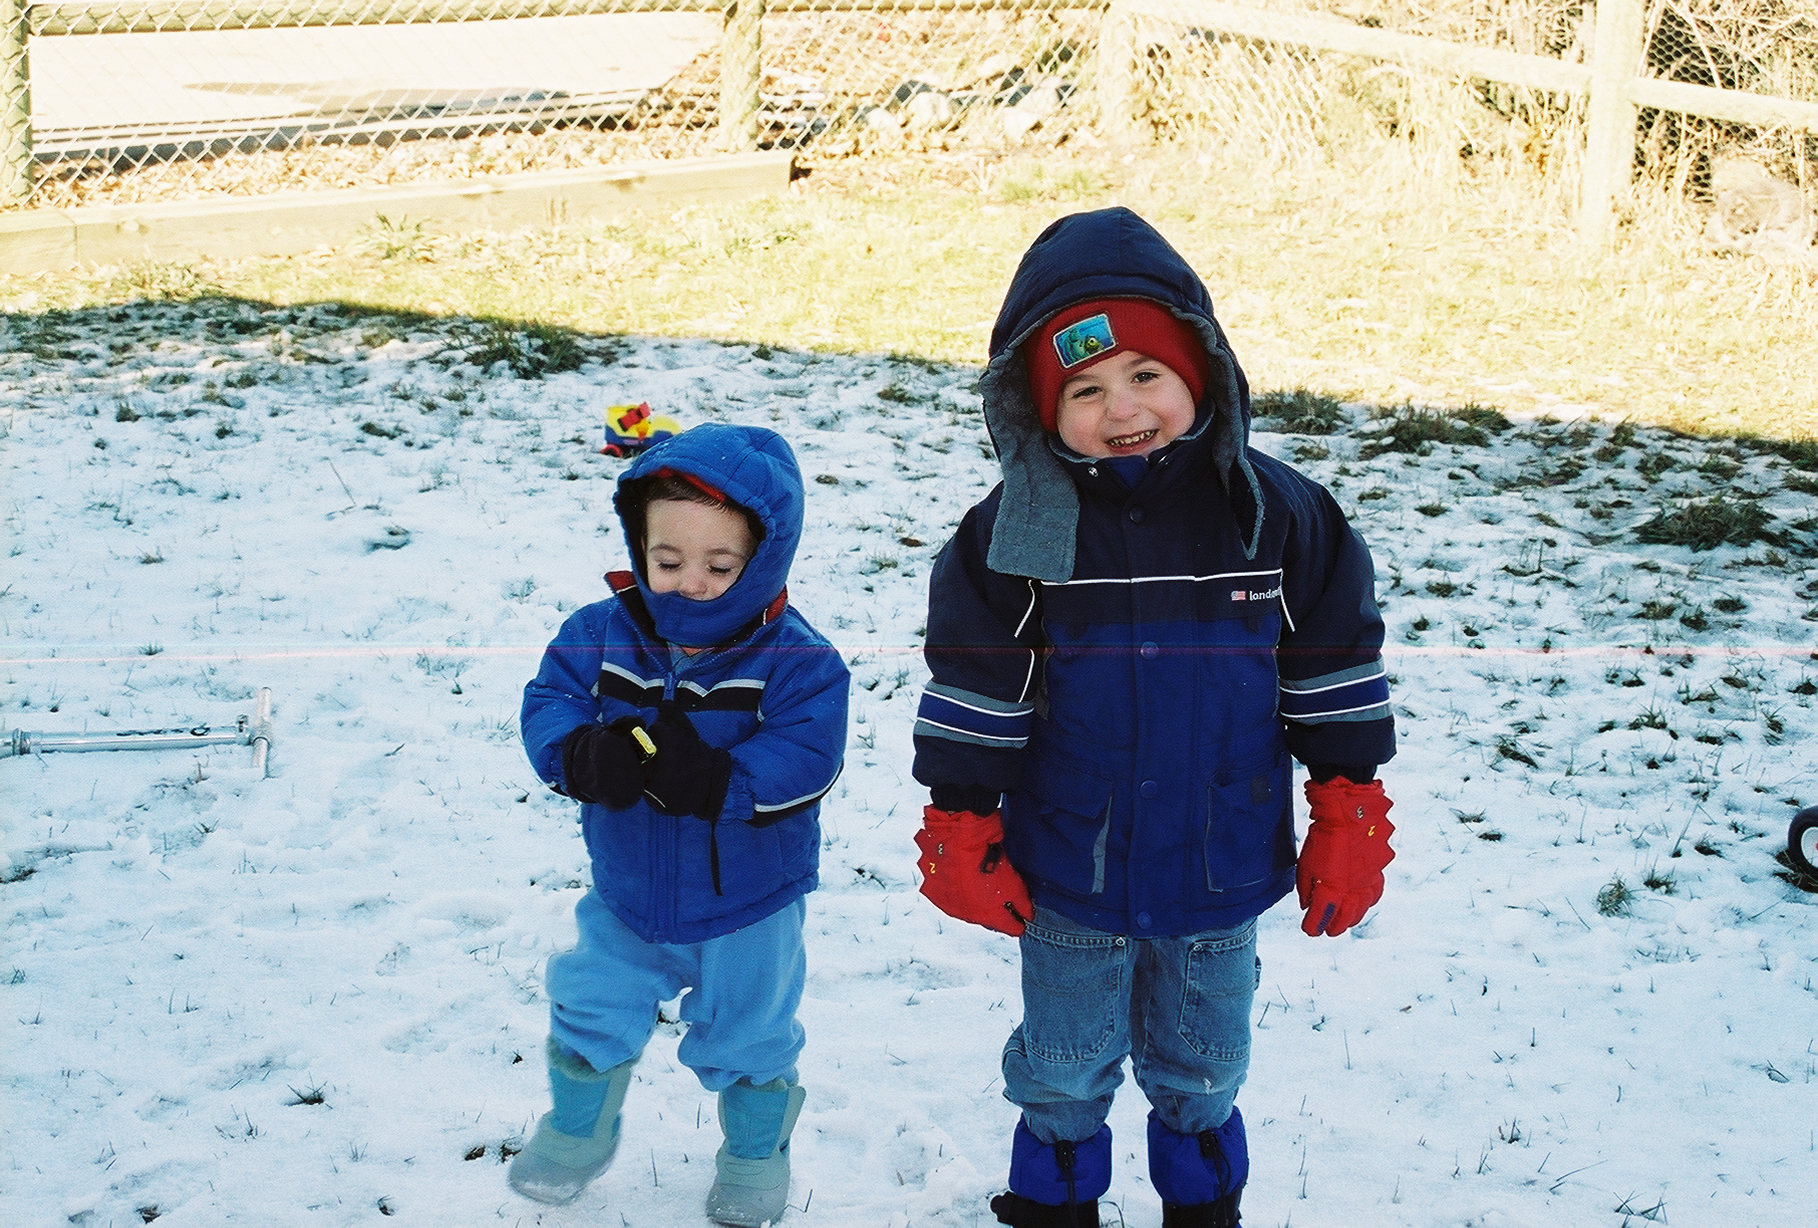 Nevan and Liam Doig when the snow started melting